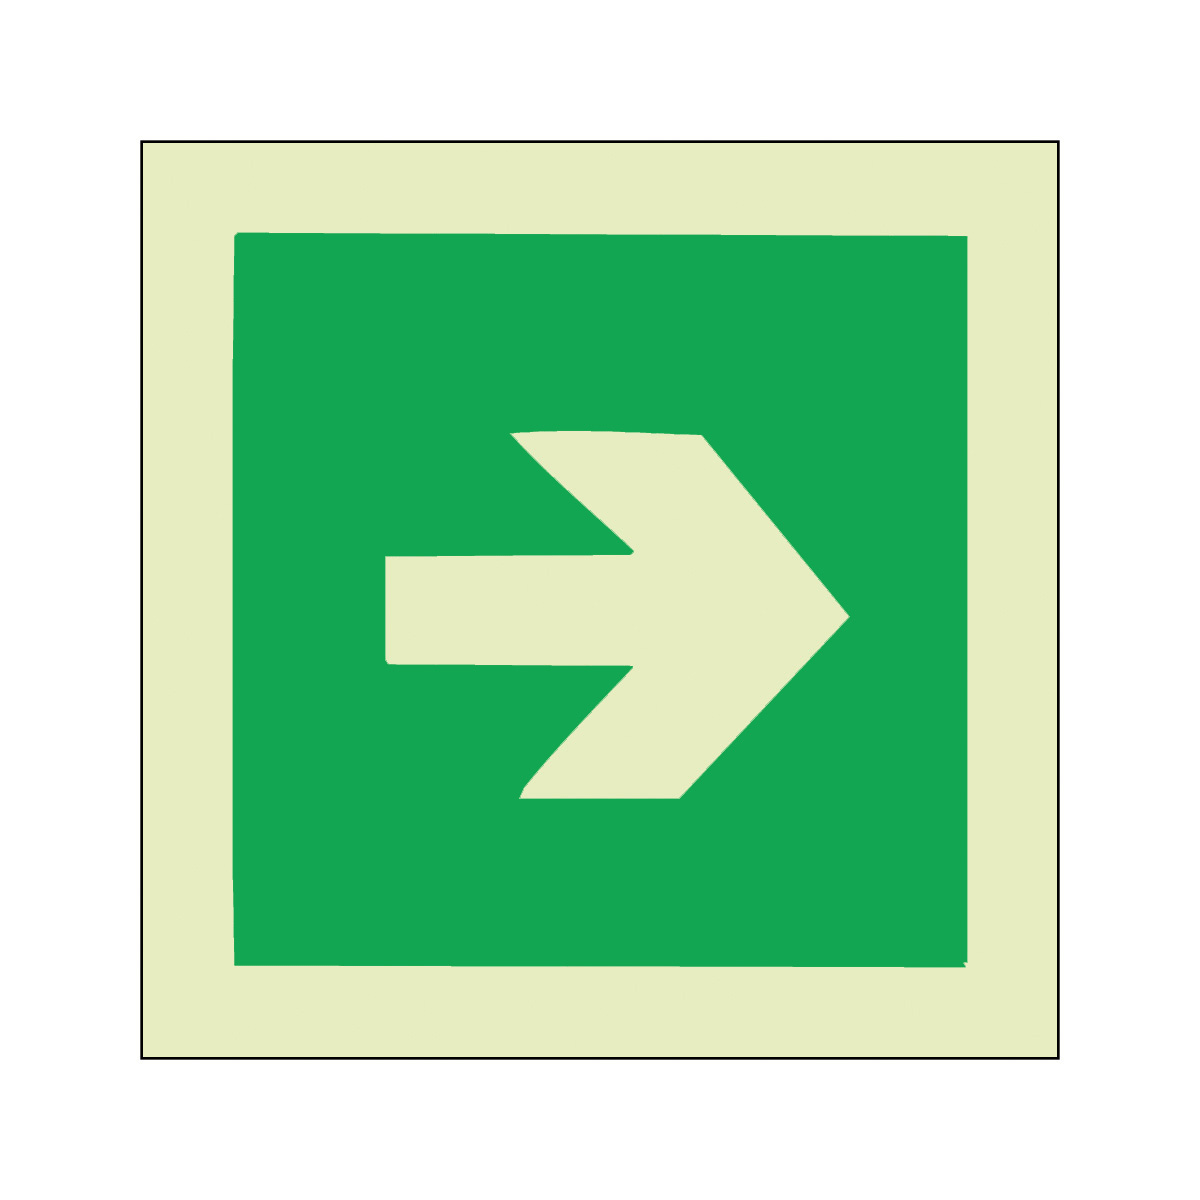 Green Arrow Safety Sign Photoluminescent Imo Sign From